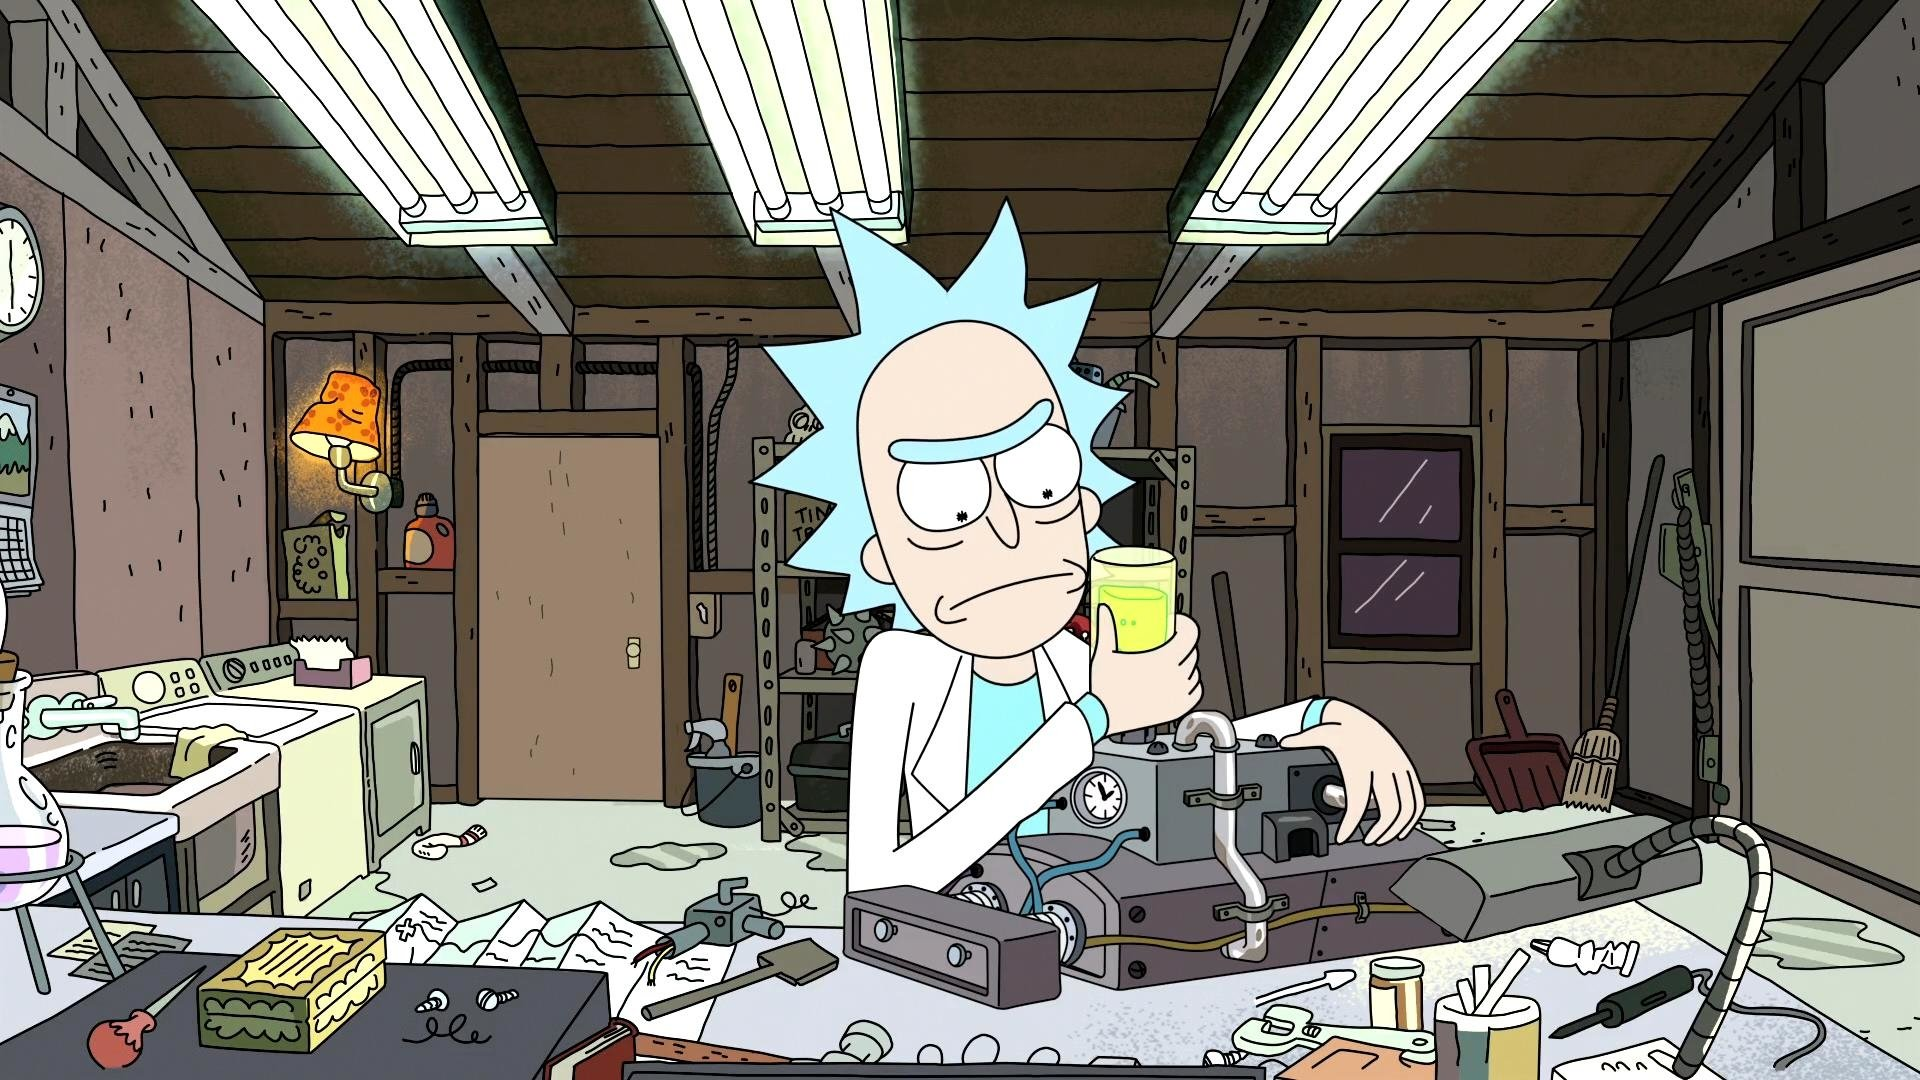 Rick Sanchez working on machine in garage